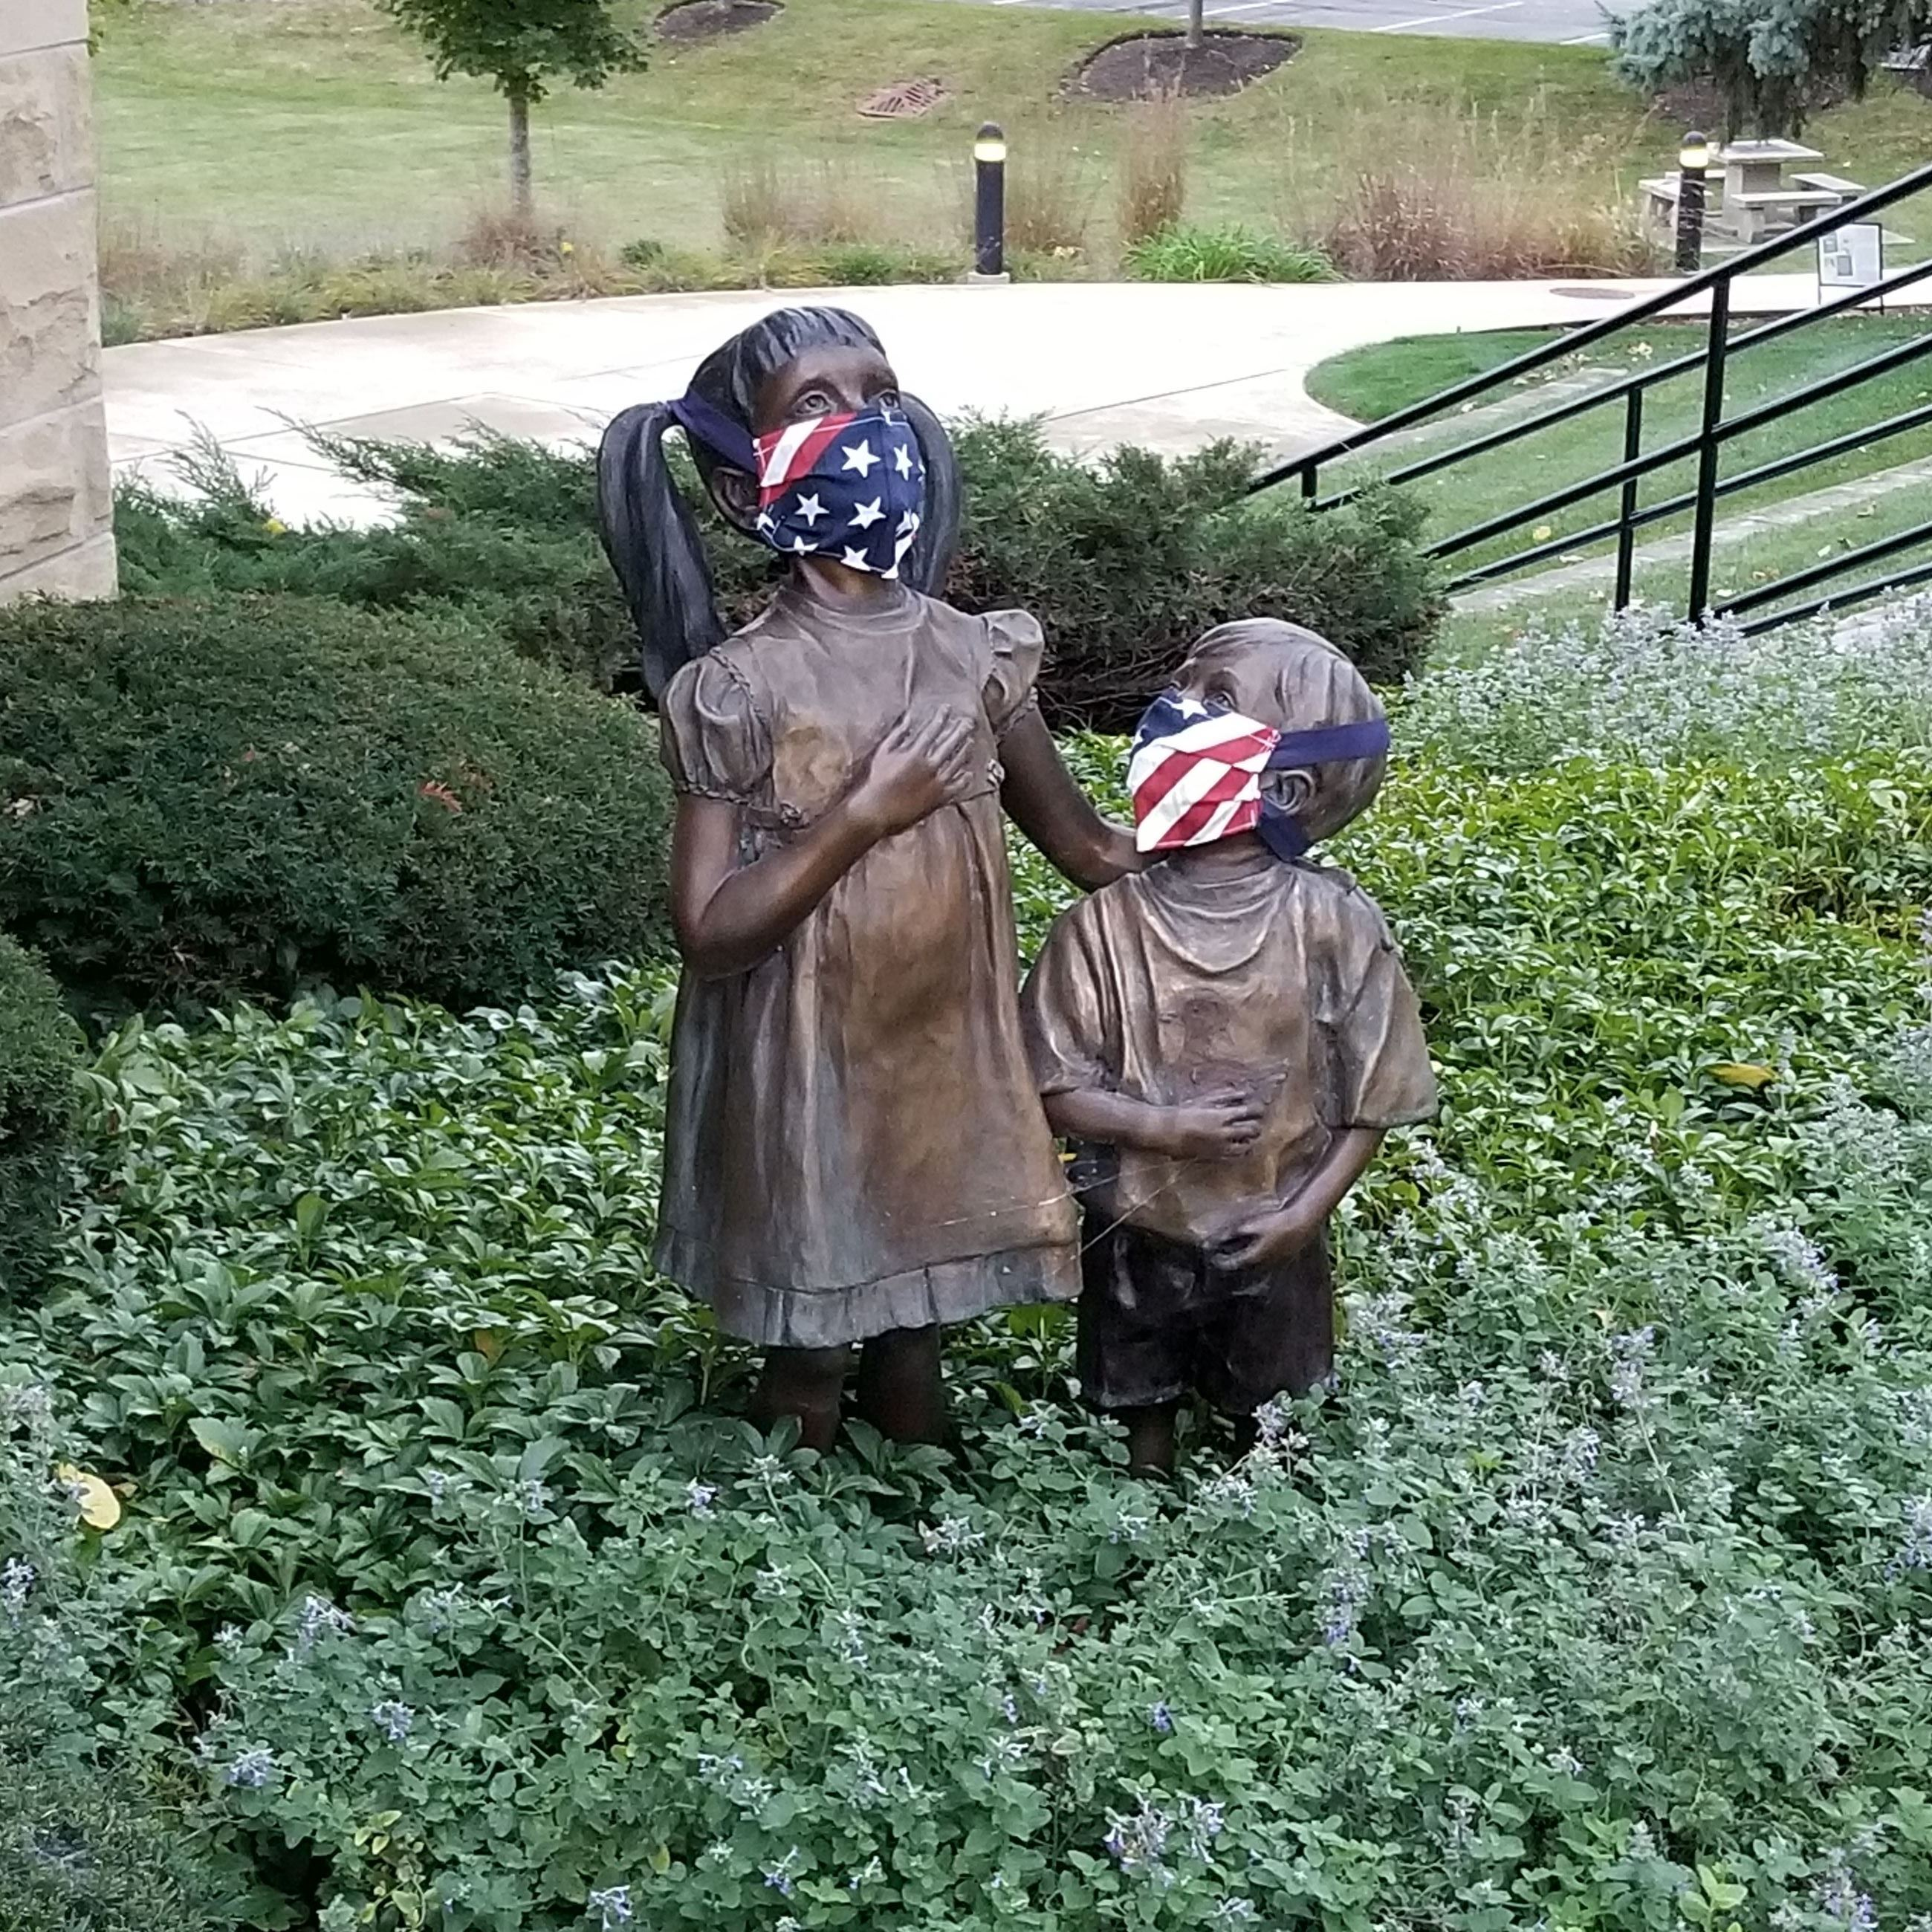 Statue Kids with Masks